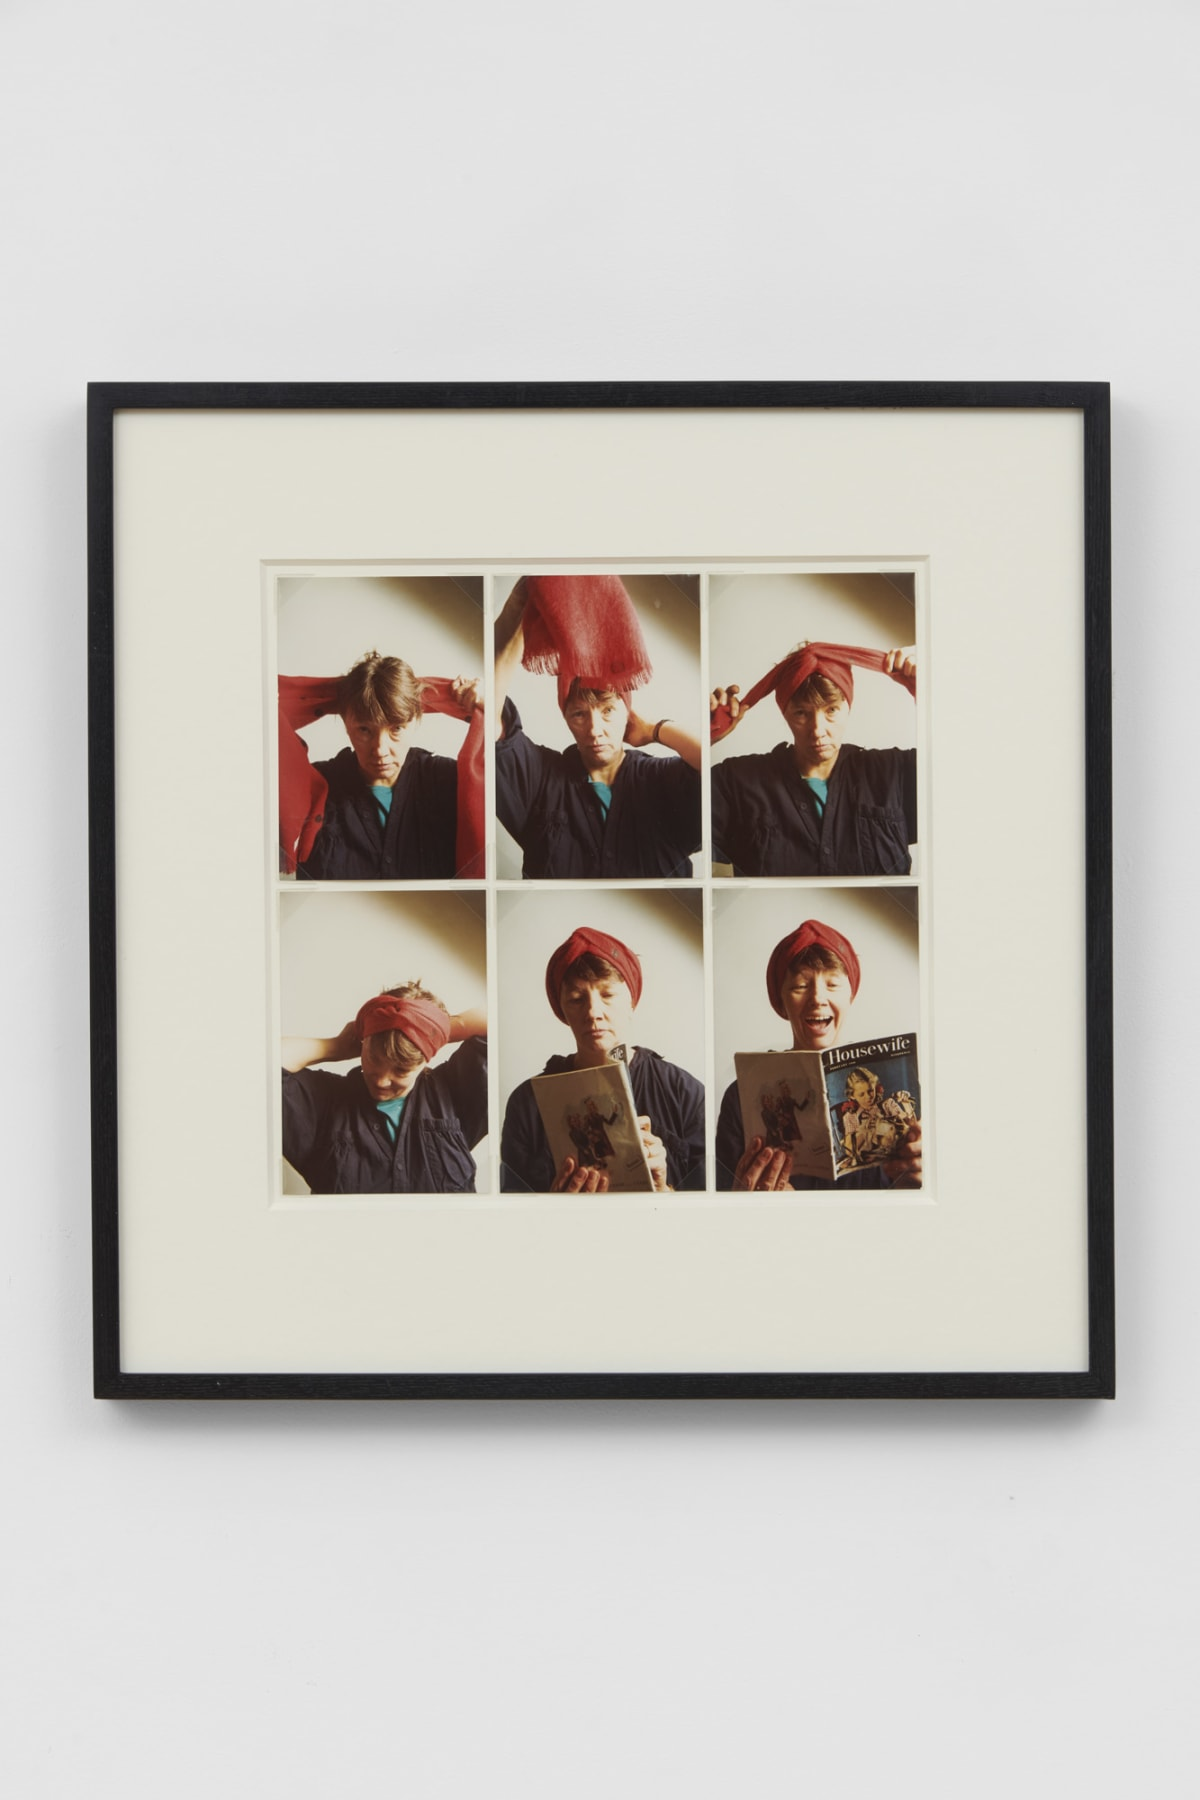 Jo SPENCE Photo Therapy: My Mother as a House Wife, 1986-88 6 colour photographs 14.8 x 10 cm each